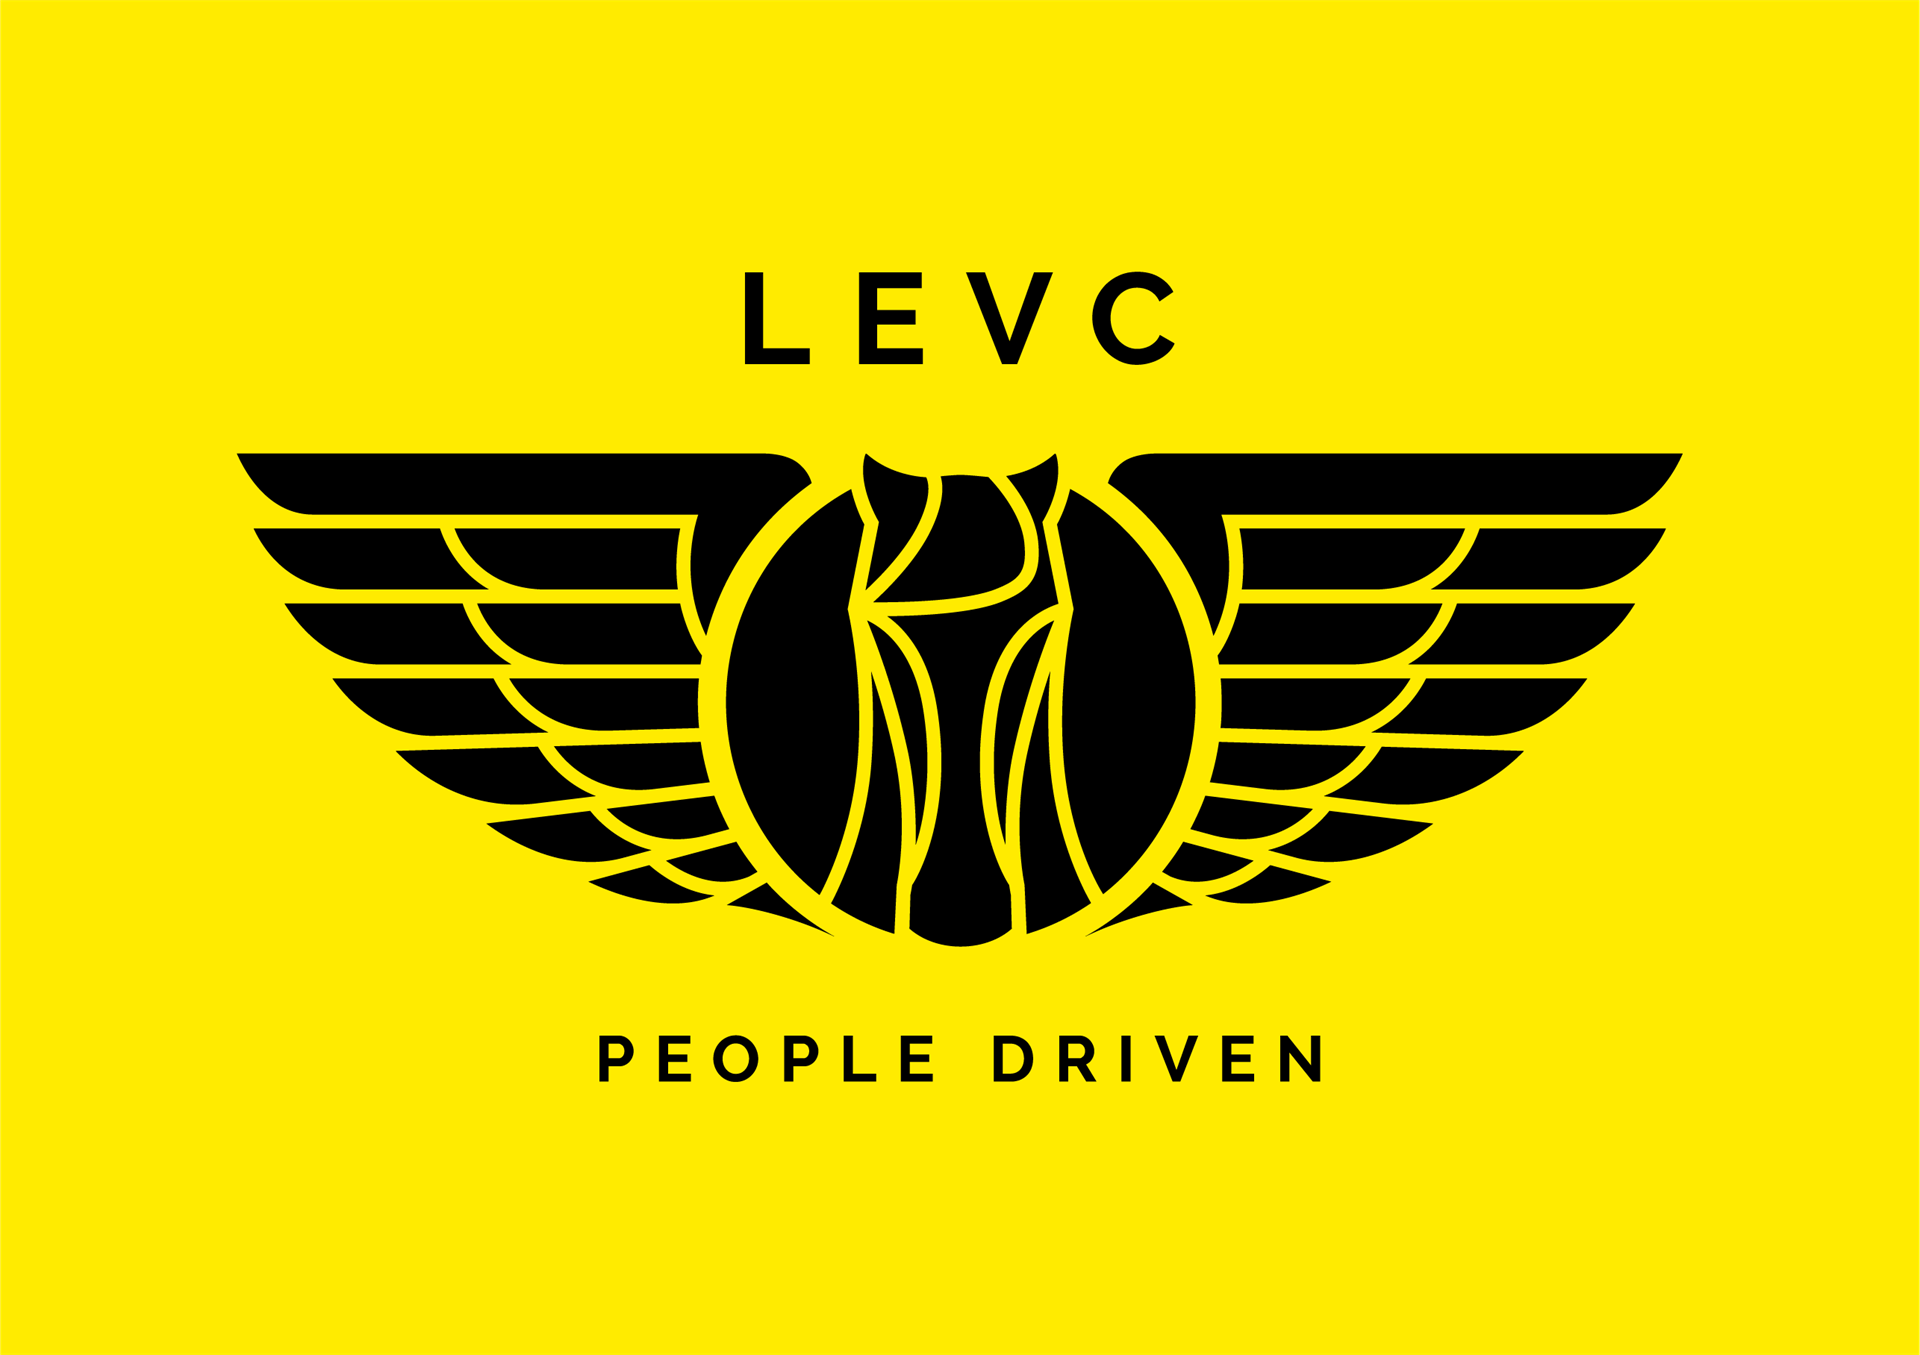 Levc logo CORRECT-01.png